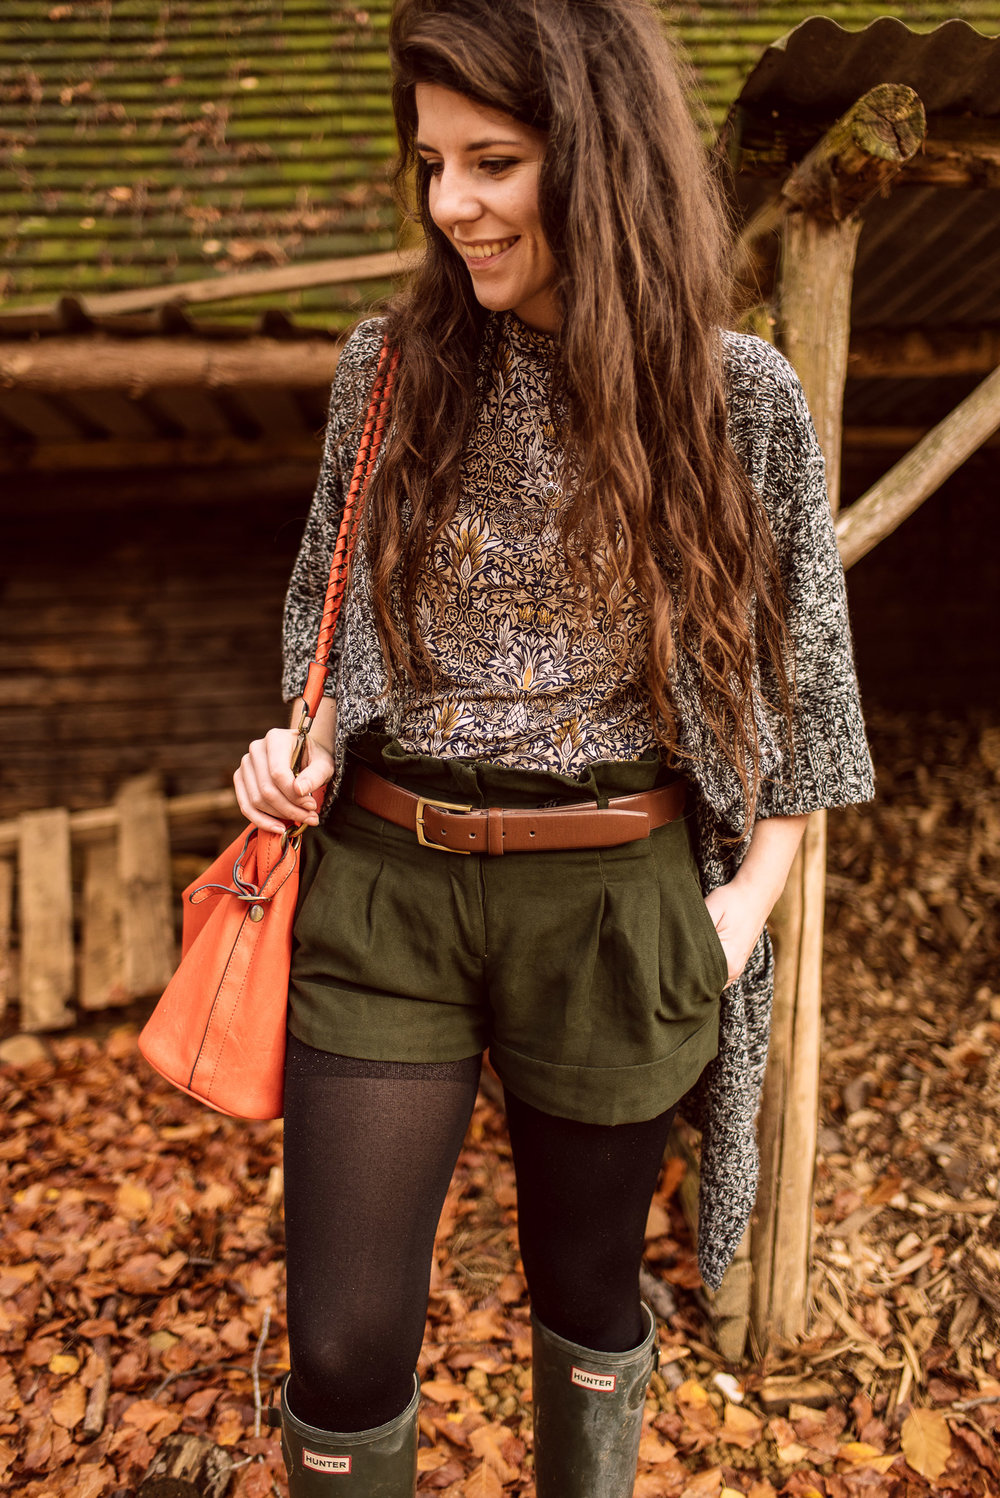 Autumn fashion, what I wore